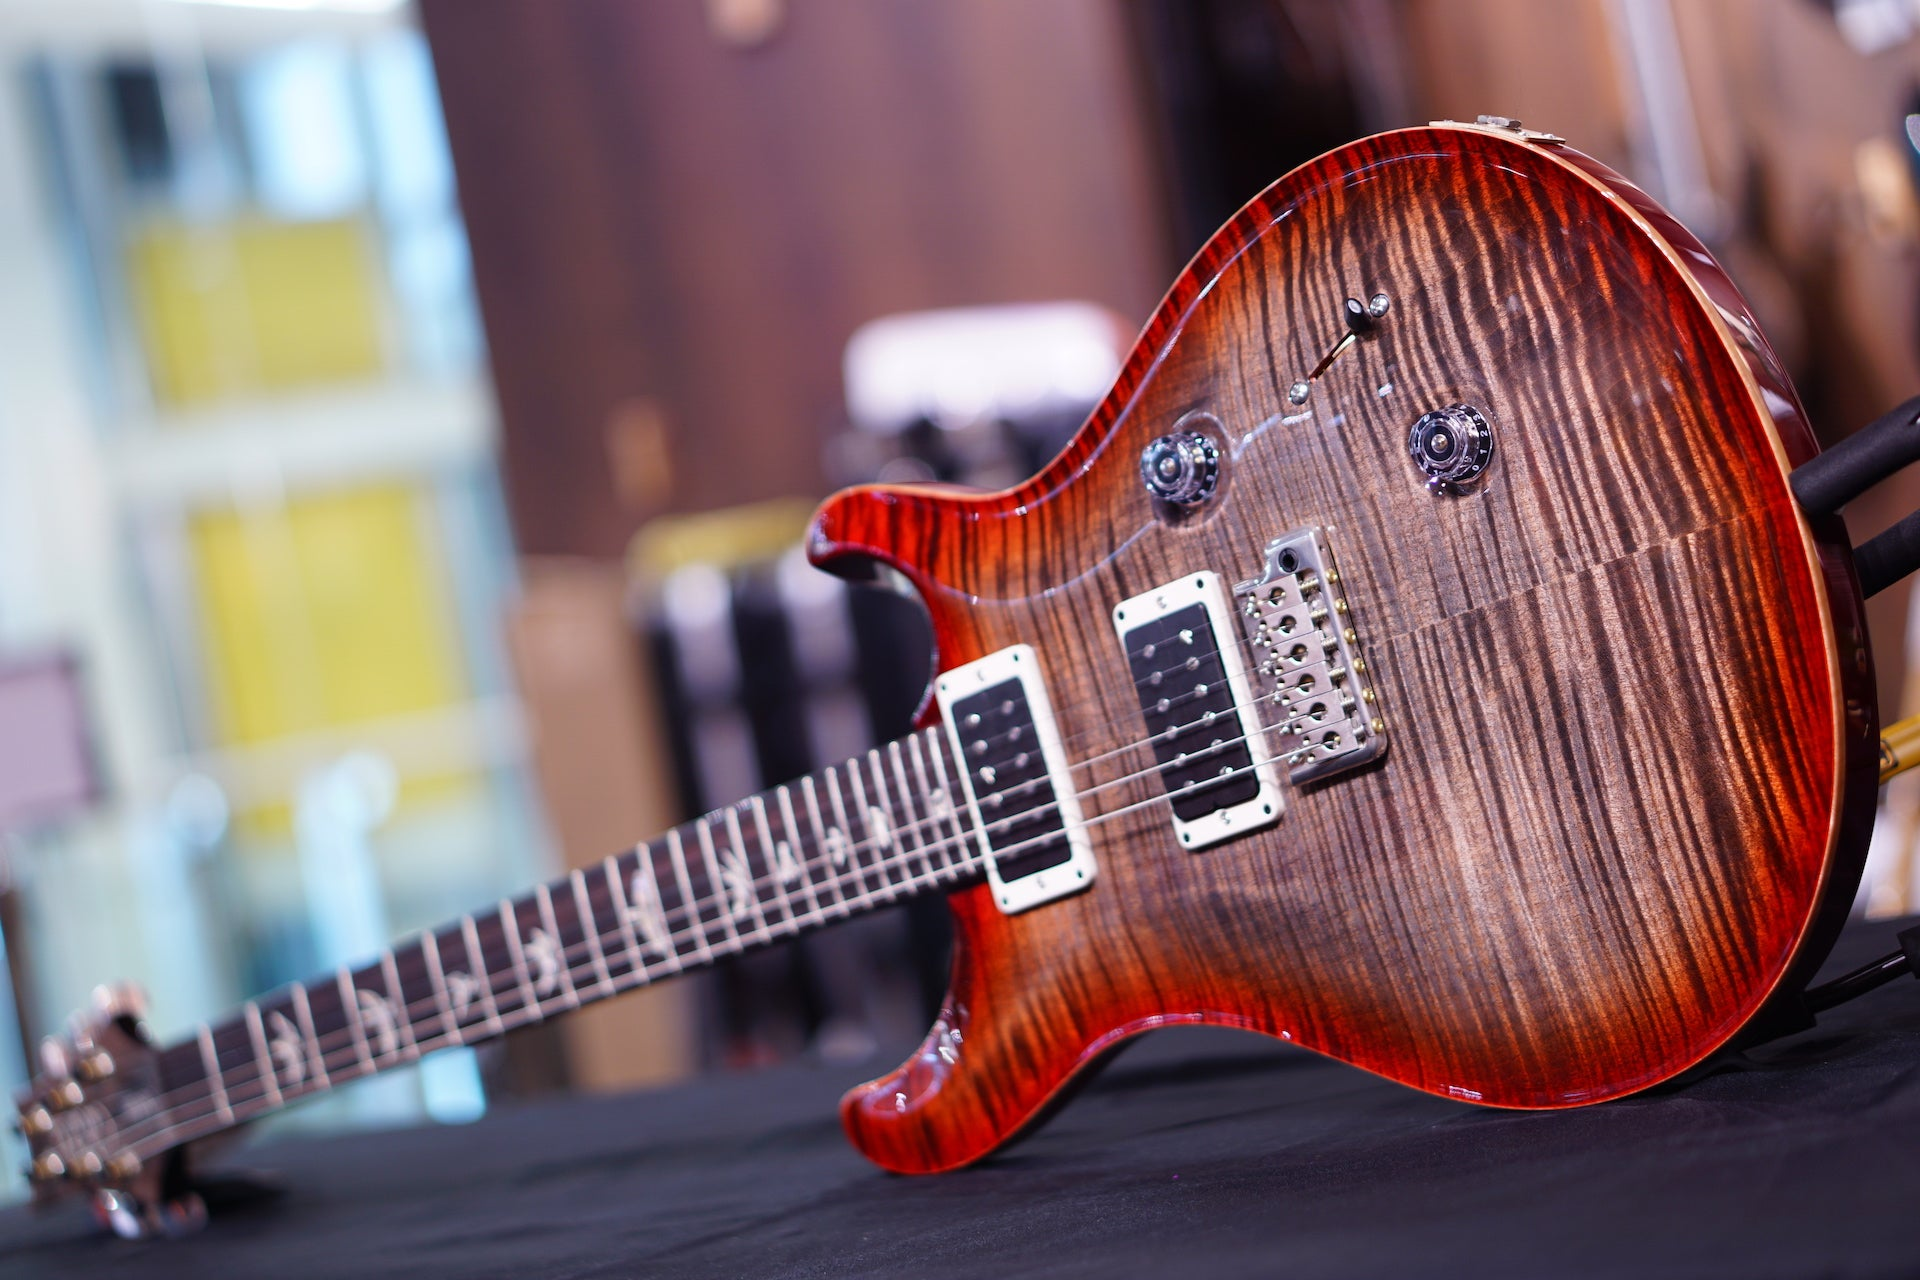 PRS Custom 24 Hiendspec 10top charcoal cherry flame neck 240759 PRS - HIENDGUITAR.COM